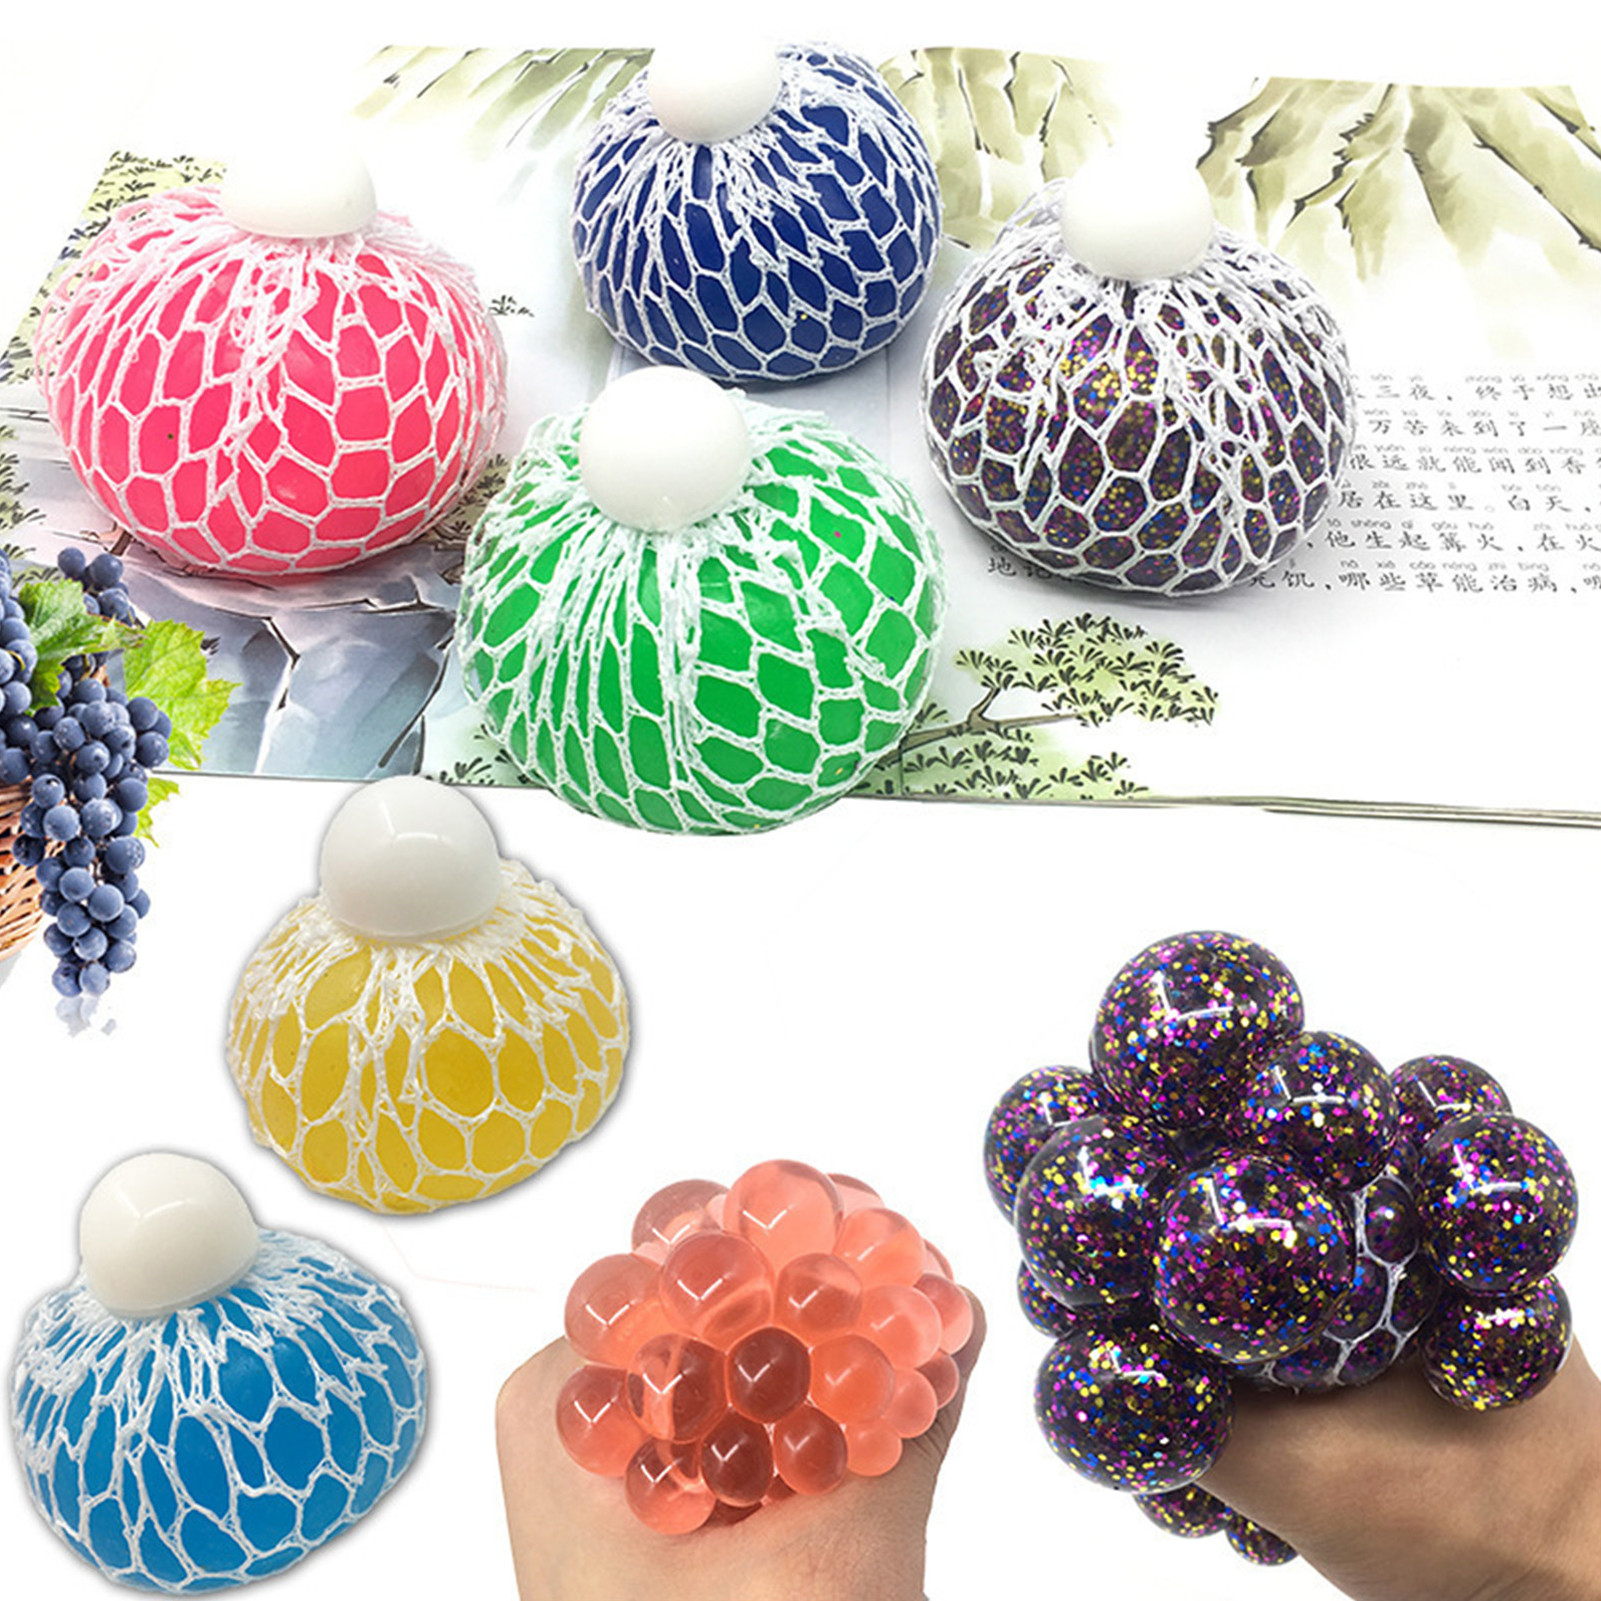 22 Pack Fidget Toys Stress Relief Toys Autism Anxiety Relief Stress Pop Bubble Fidget Sensory Decompression